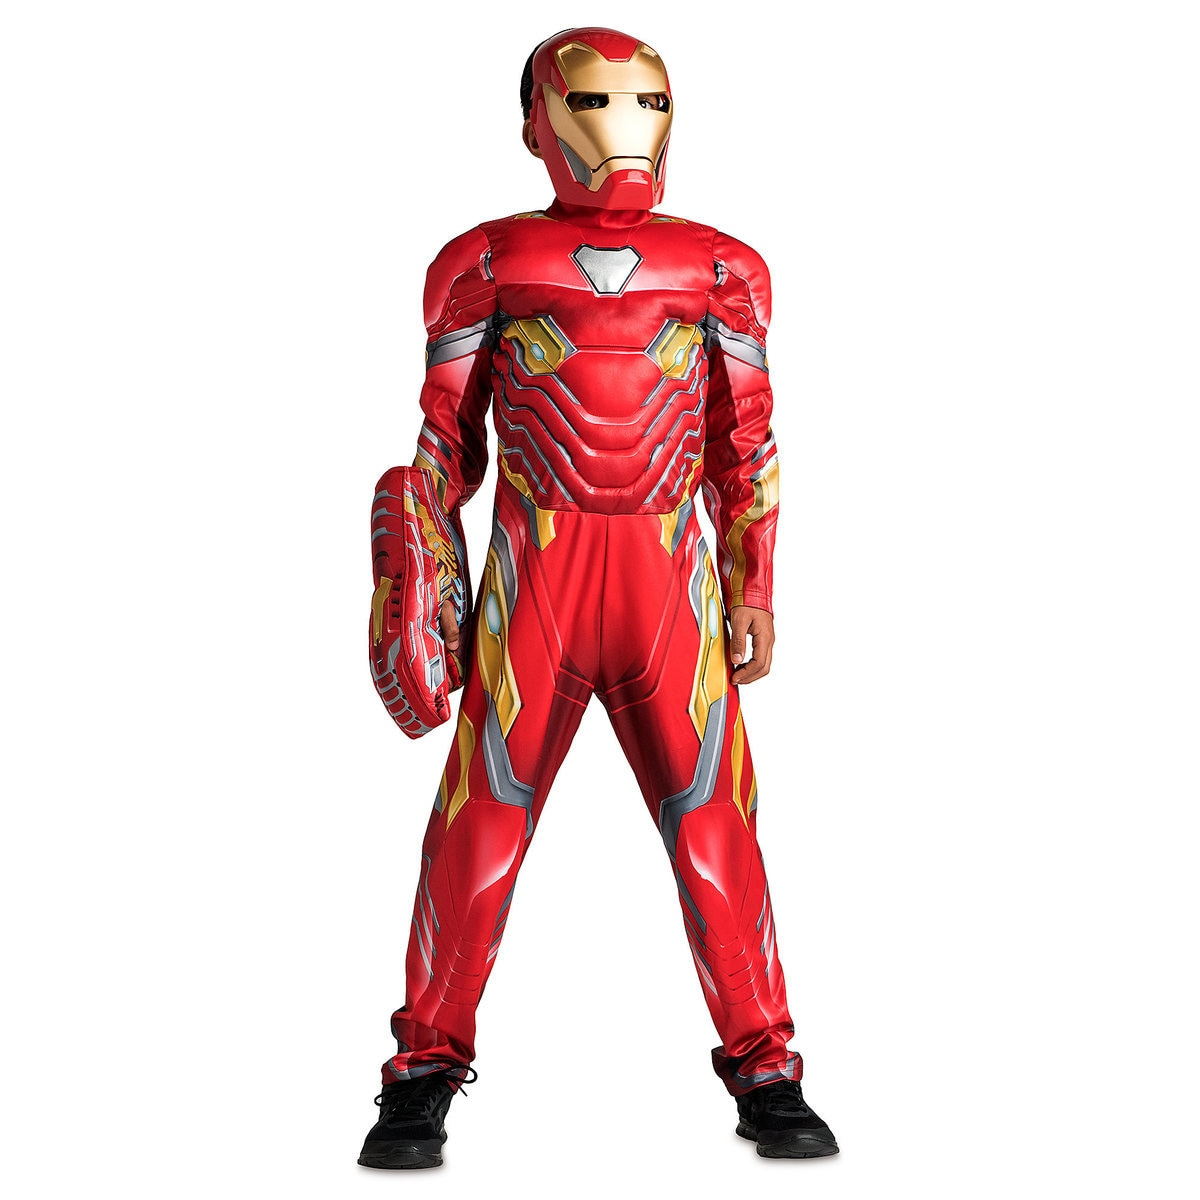 Product Image of Iron Man Costume for Kids - Marvel's Avengers: Infinity War # 1